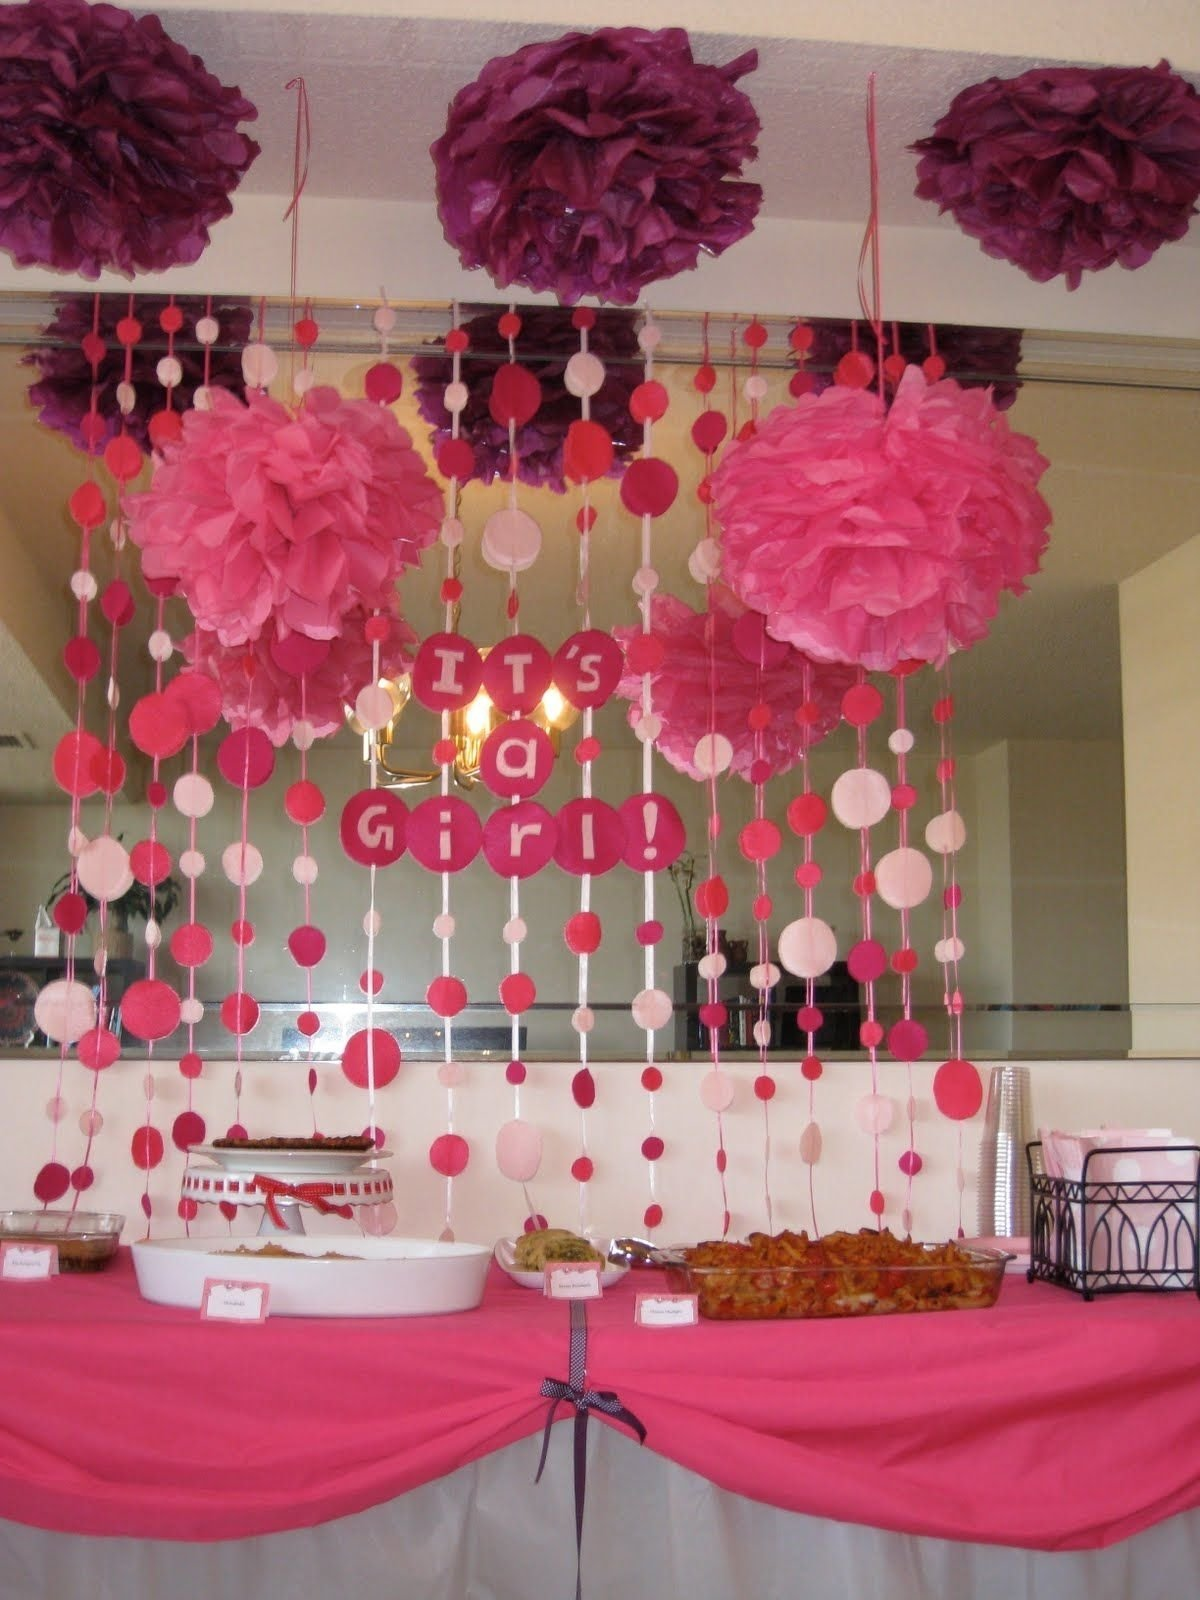 10 Stunning Baby Shower For A Girl Ideas baby shower centerpiece ideas baby girl shower ideas wedding 6 2020